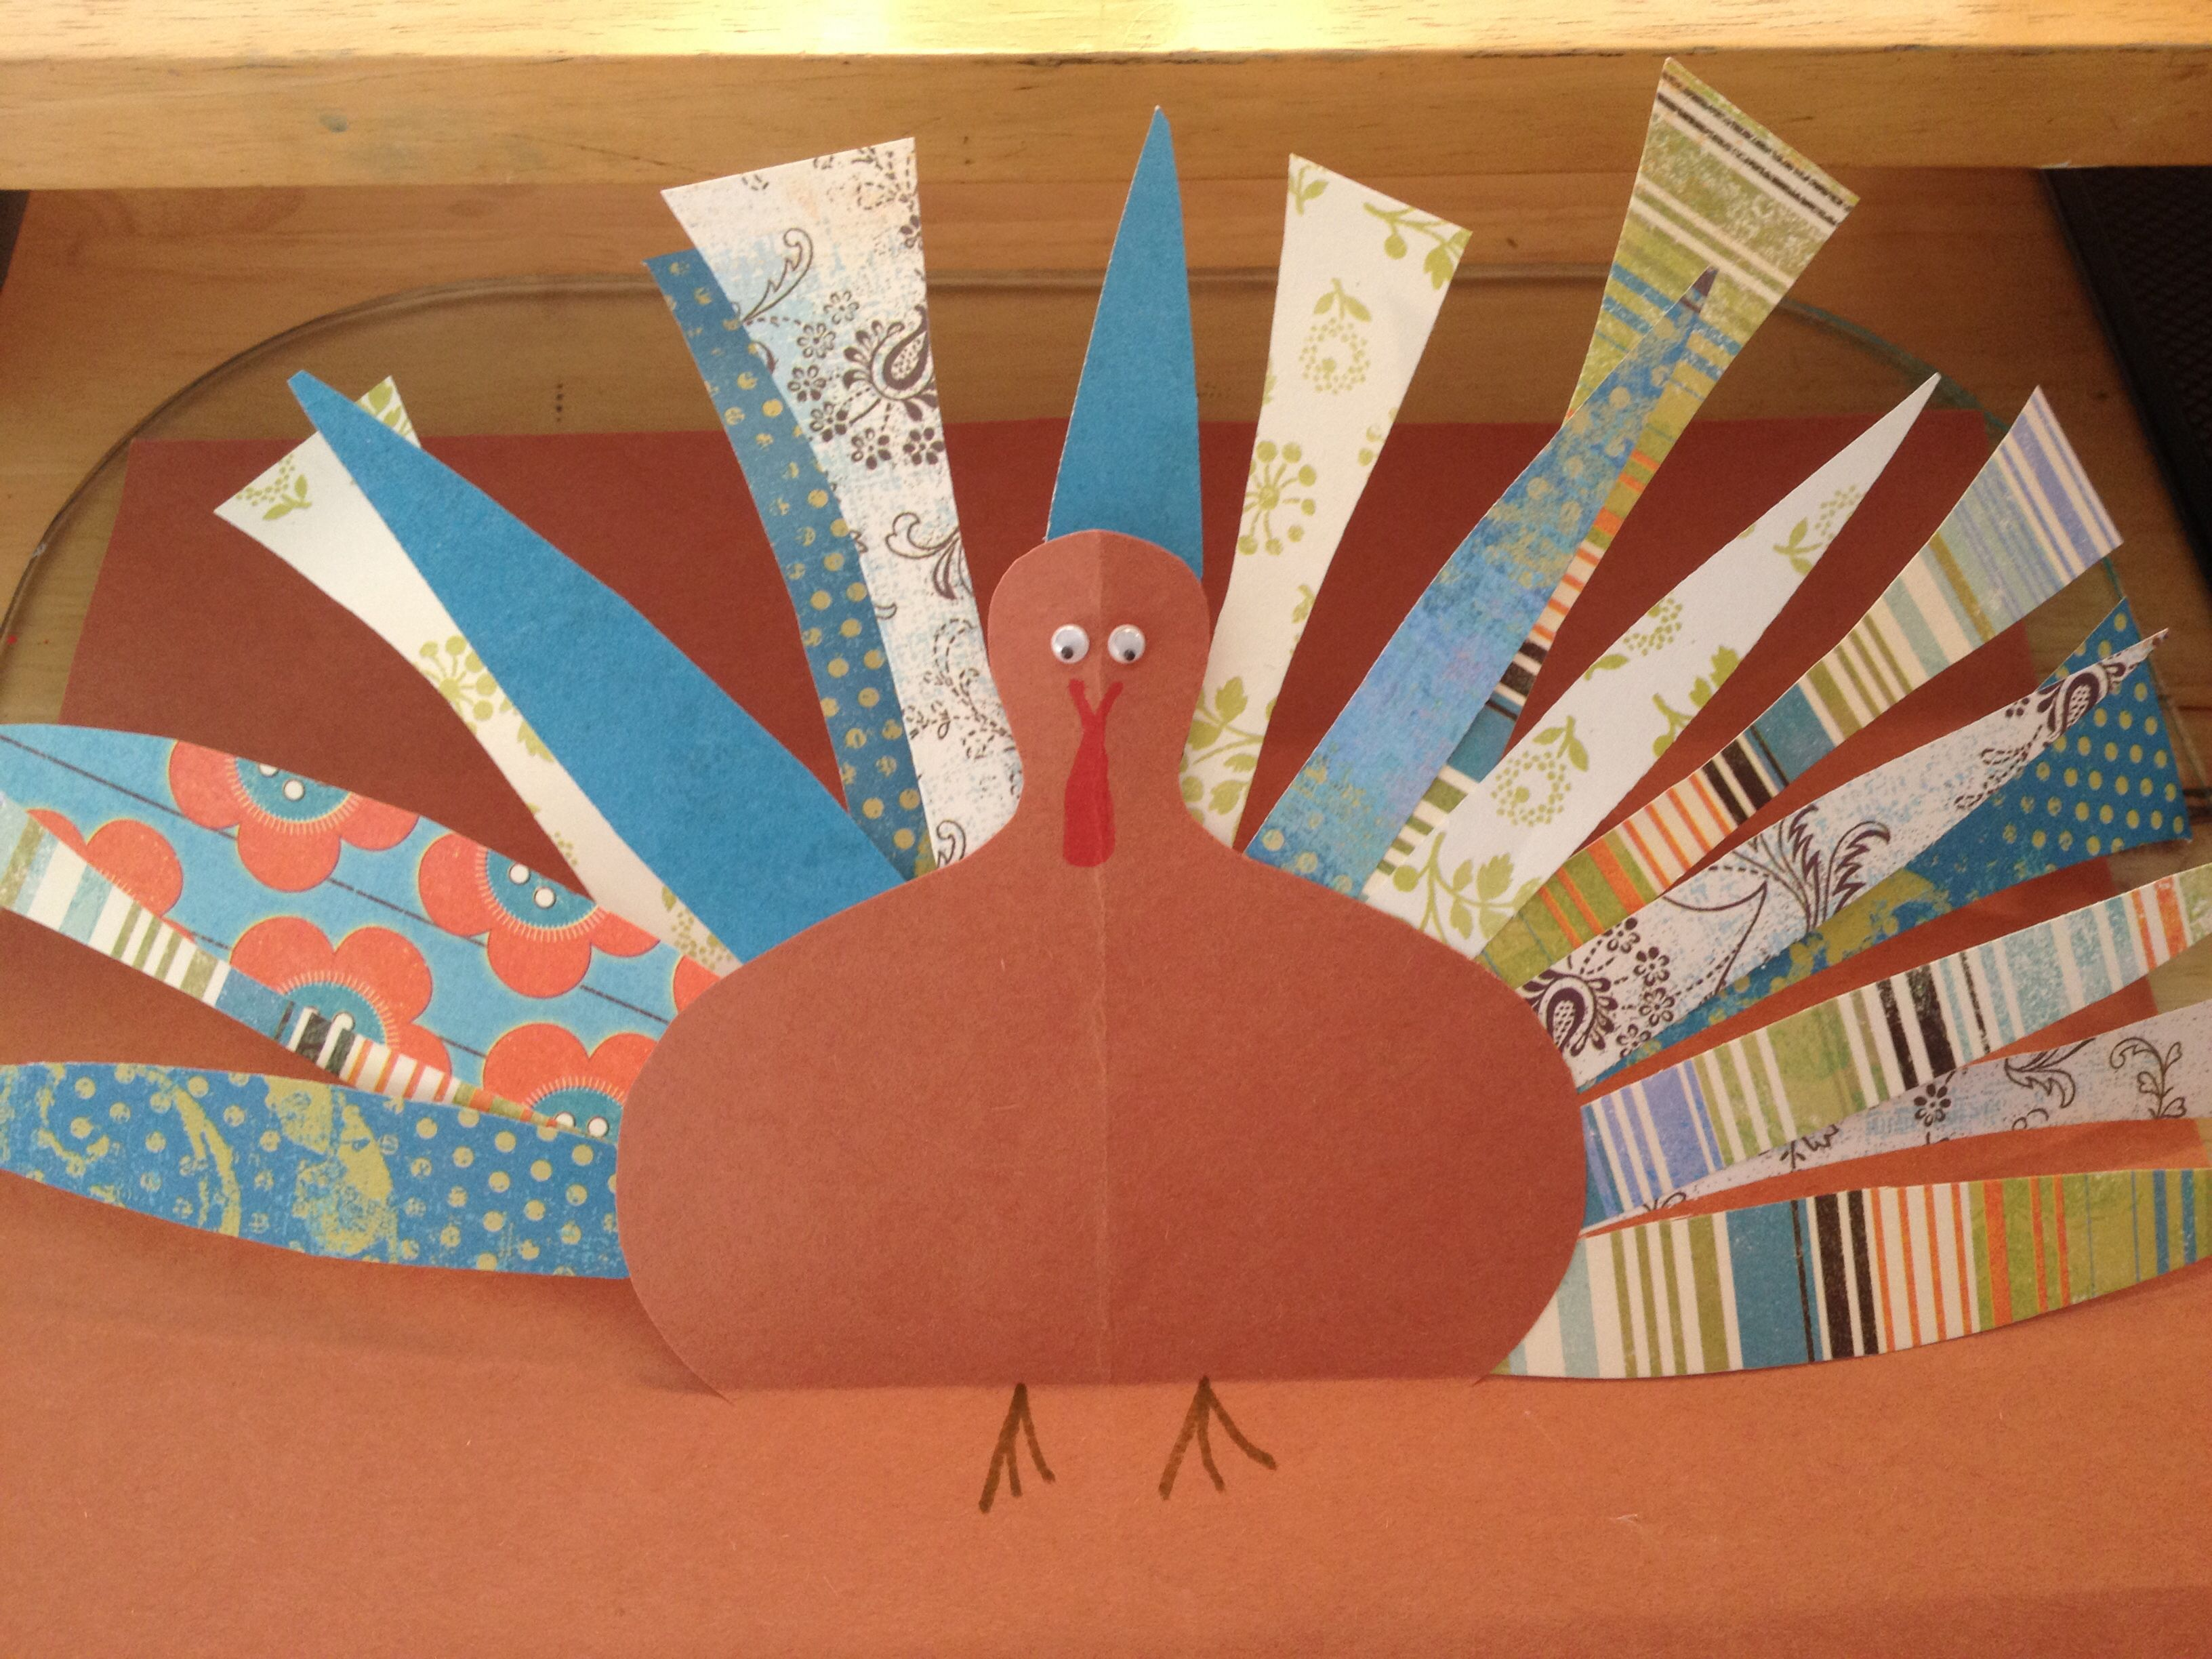 turkey made from cut scrapbook paper on construction paper | my art